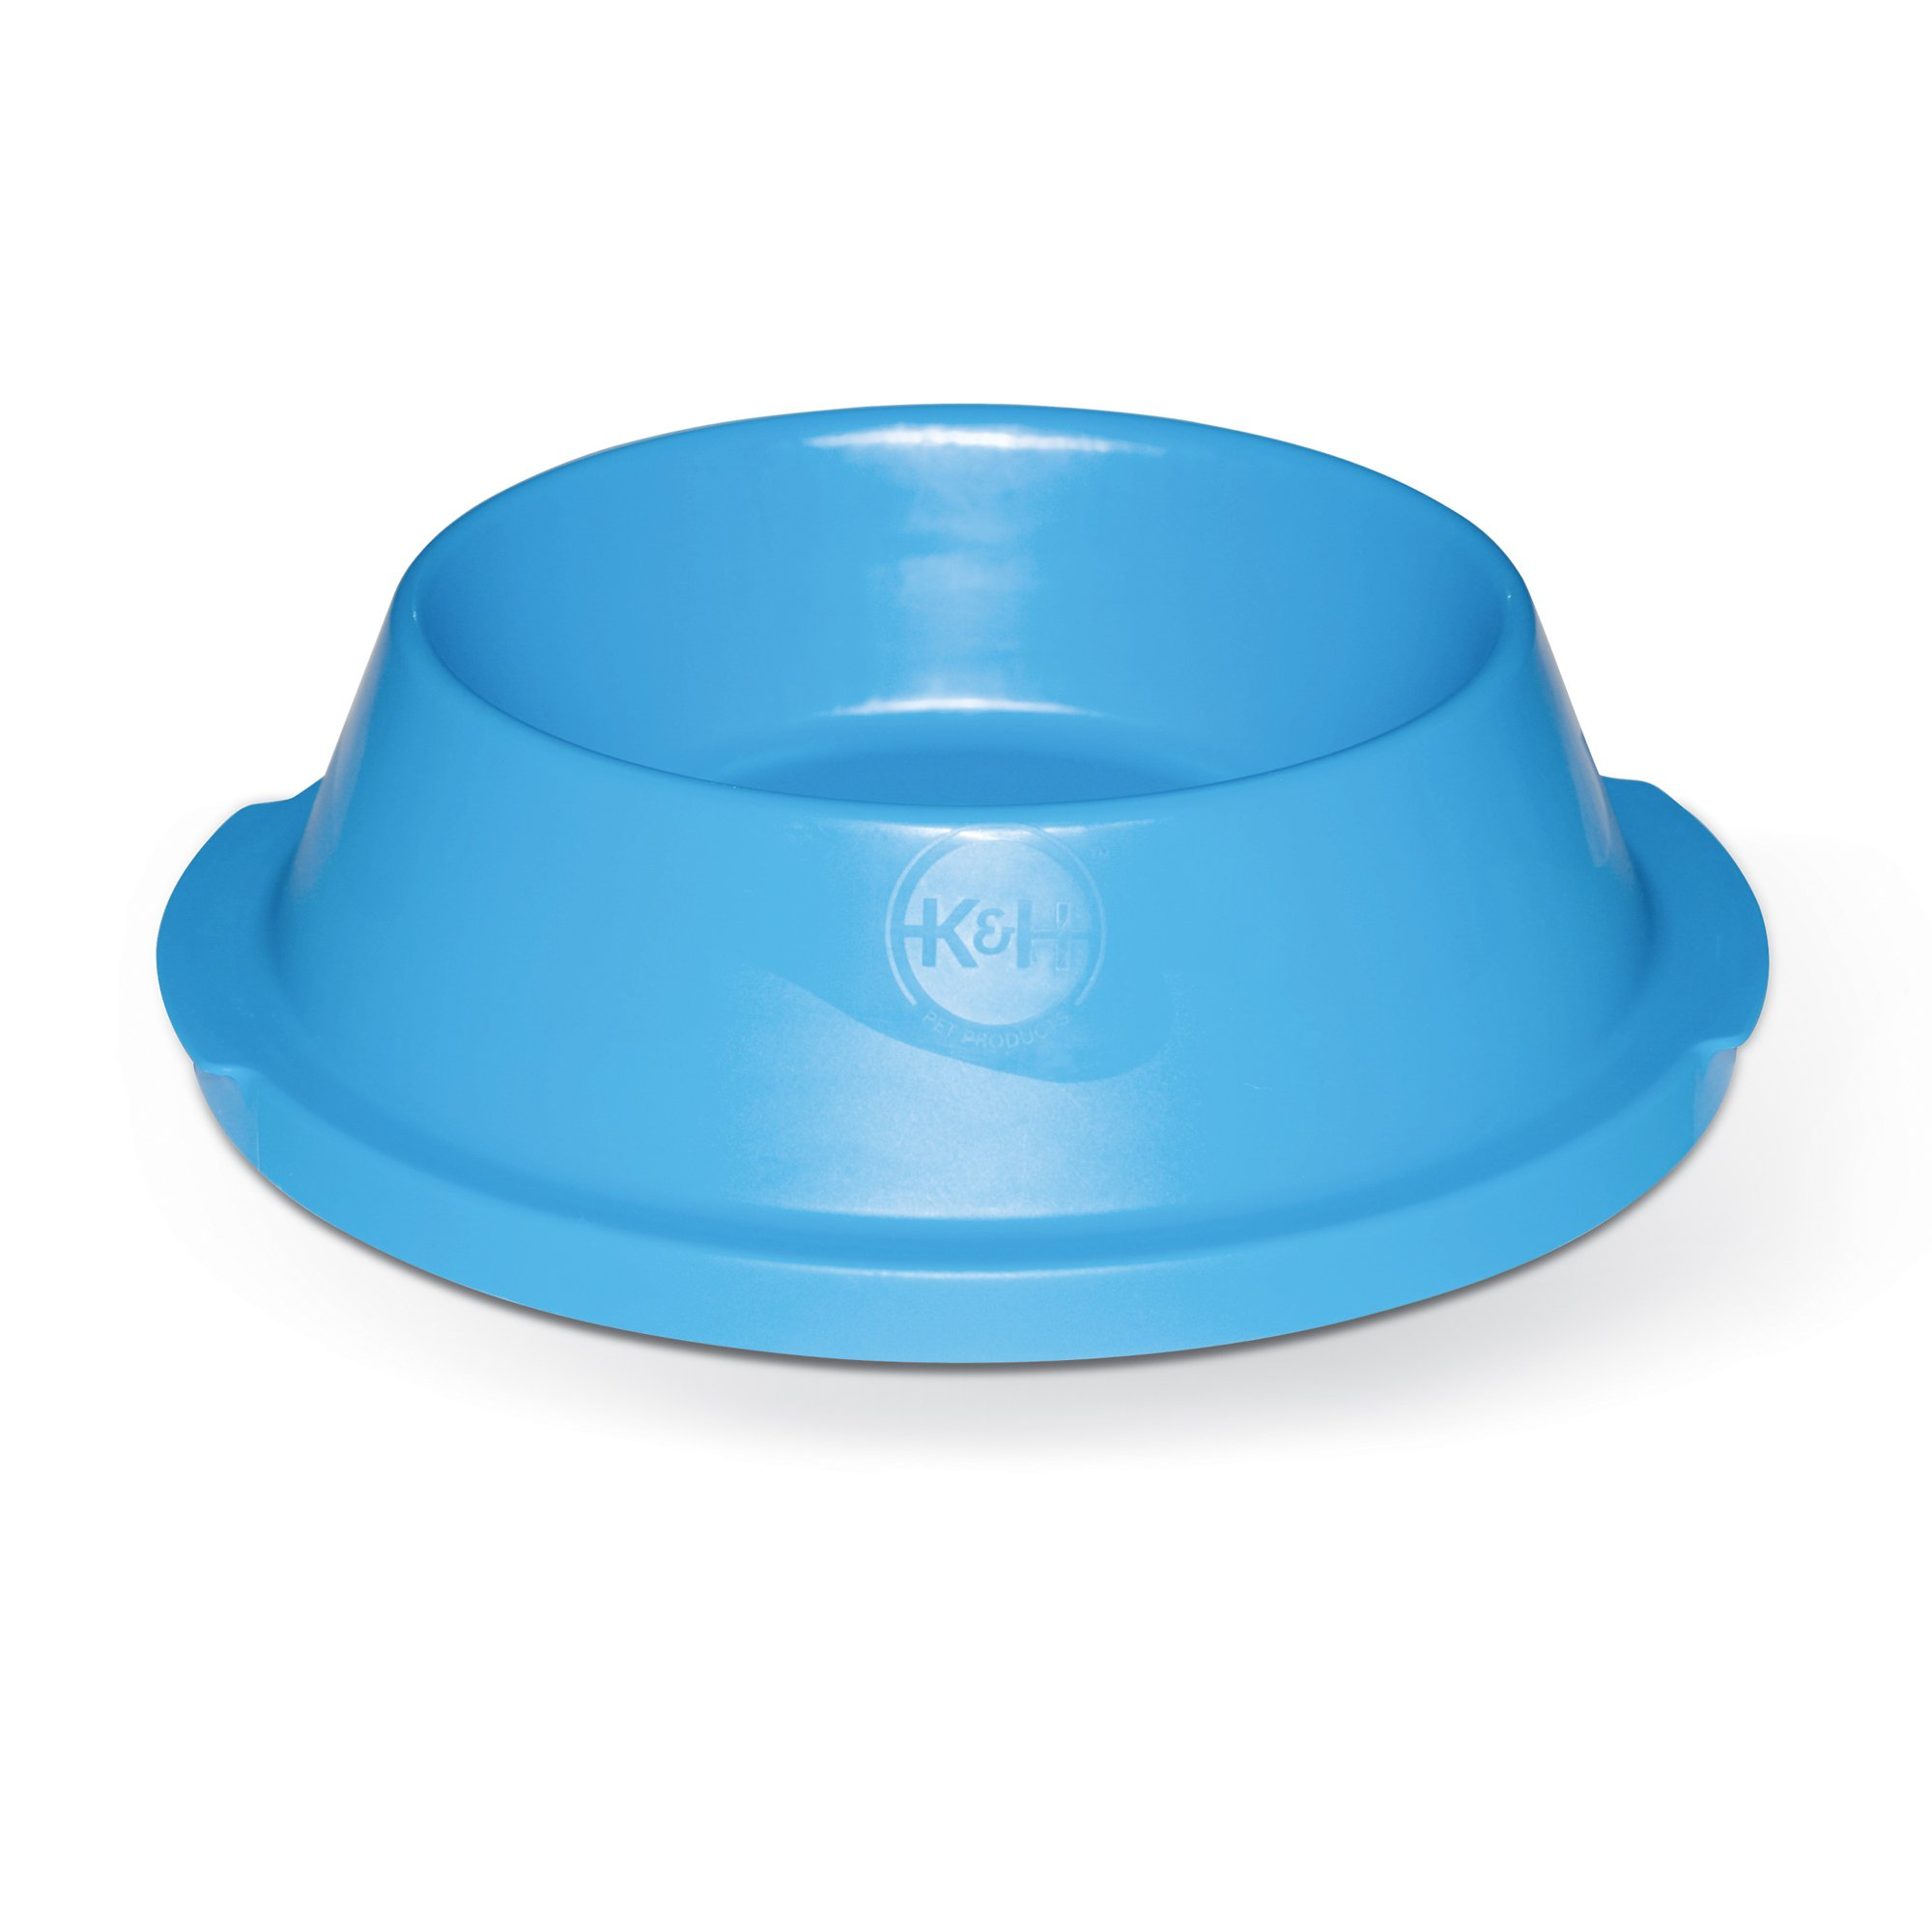 K H Cooling Bowl Petco